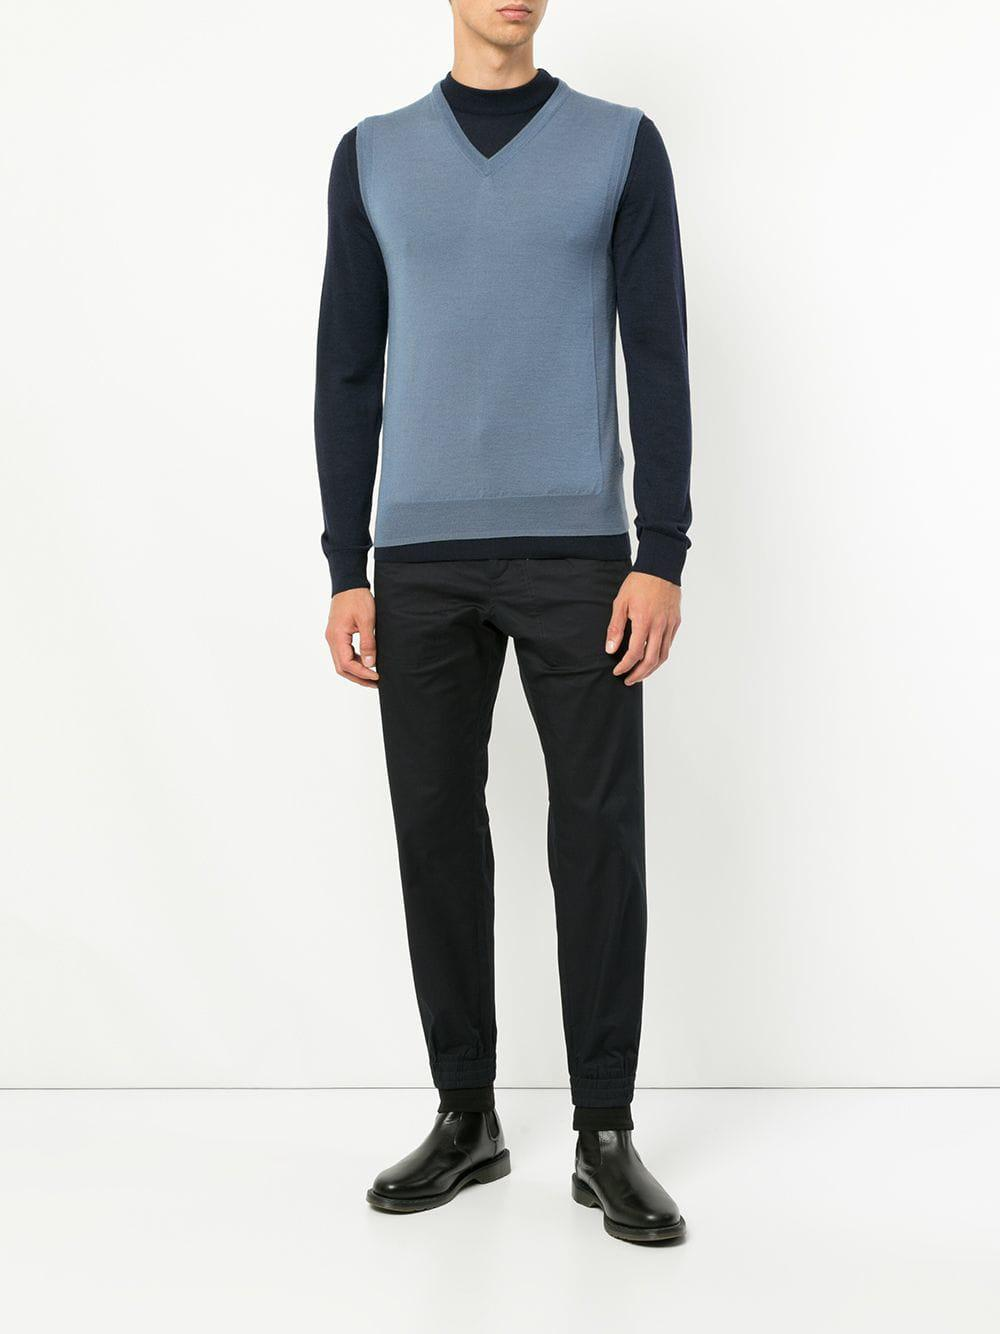 Cerruti 1881 Wool Sleeveless Fitted Sweater in Blue for Men